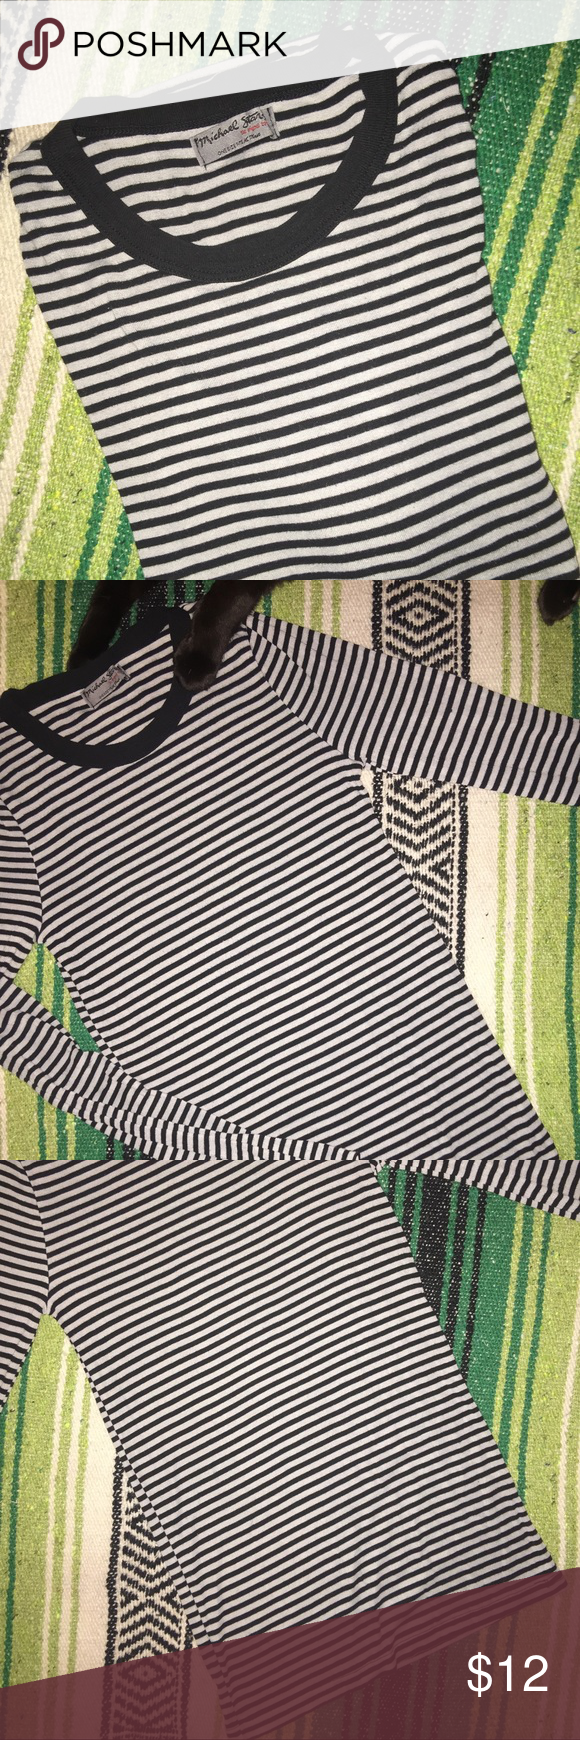 MICHAEL STARS STRIPED LONG SLEEVE TEE 50% POLY / 50% RAYON • BLACK AND GREY STRIPES • GOOD CONDITION • love this shirt, wish it fit me 😍 Michael Stars Tops Tees - Long Sleeve